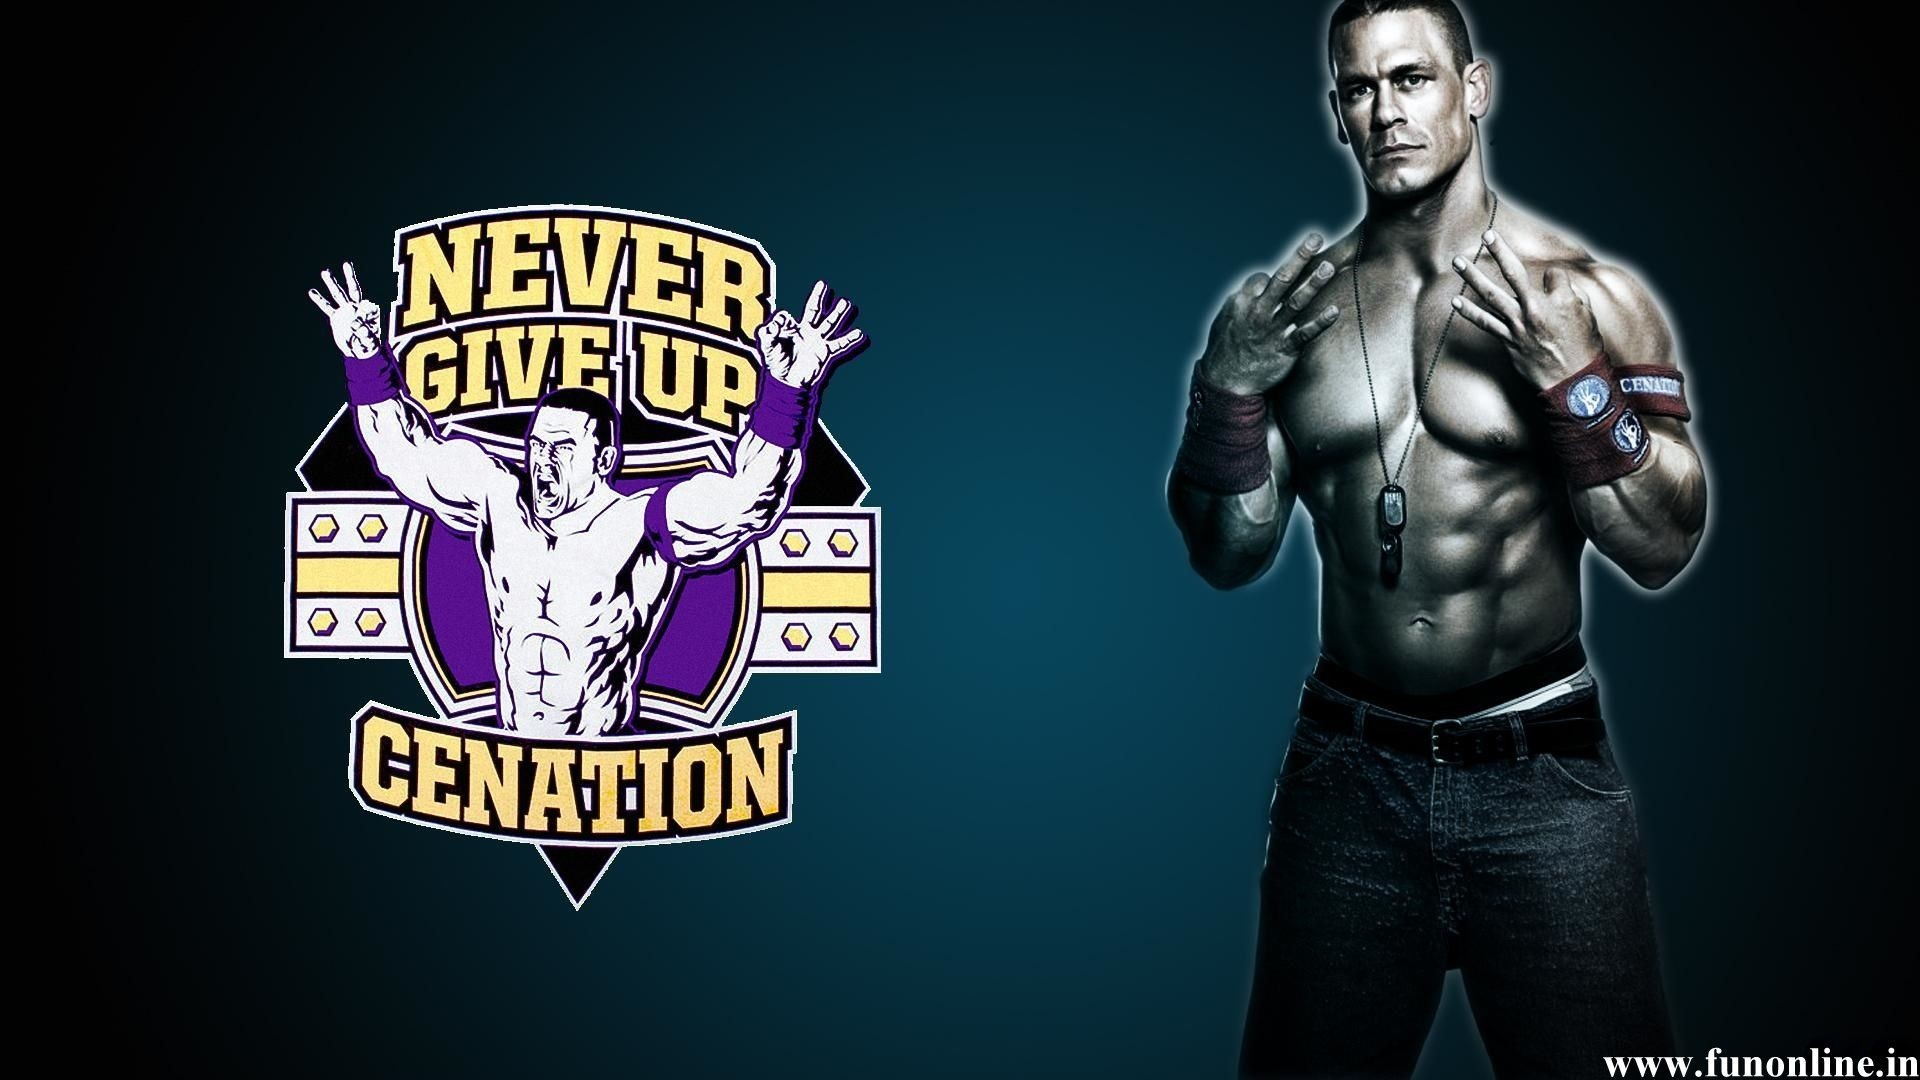 1920x1080  John Cena Wallpapers, Download WWE John Cena's HD Wallpaper Free